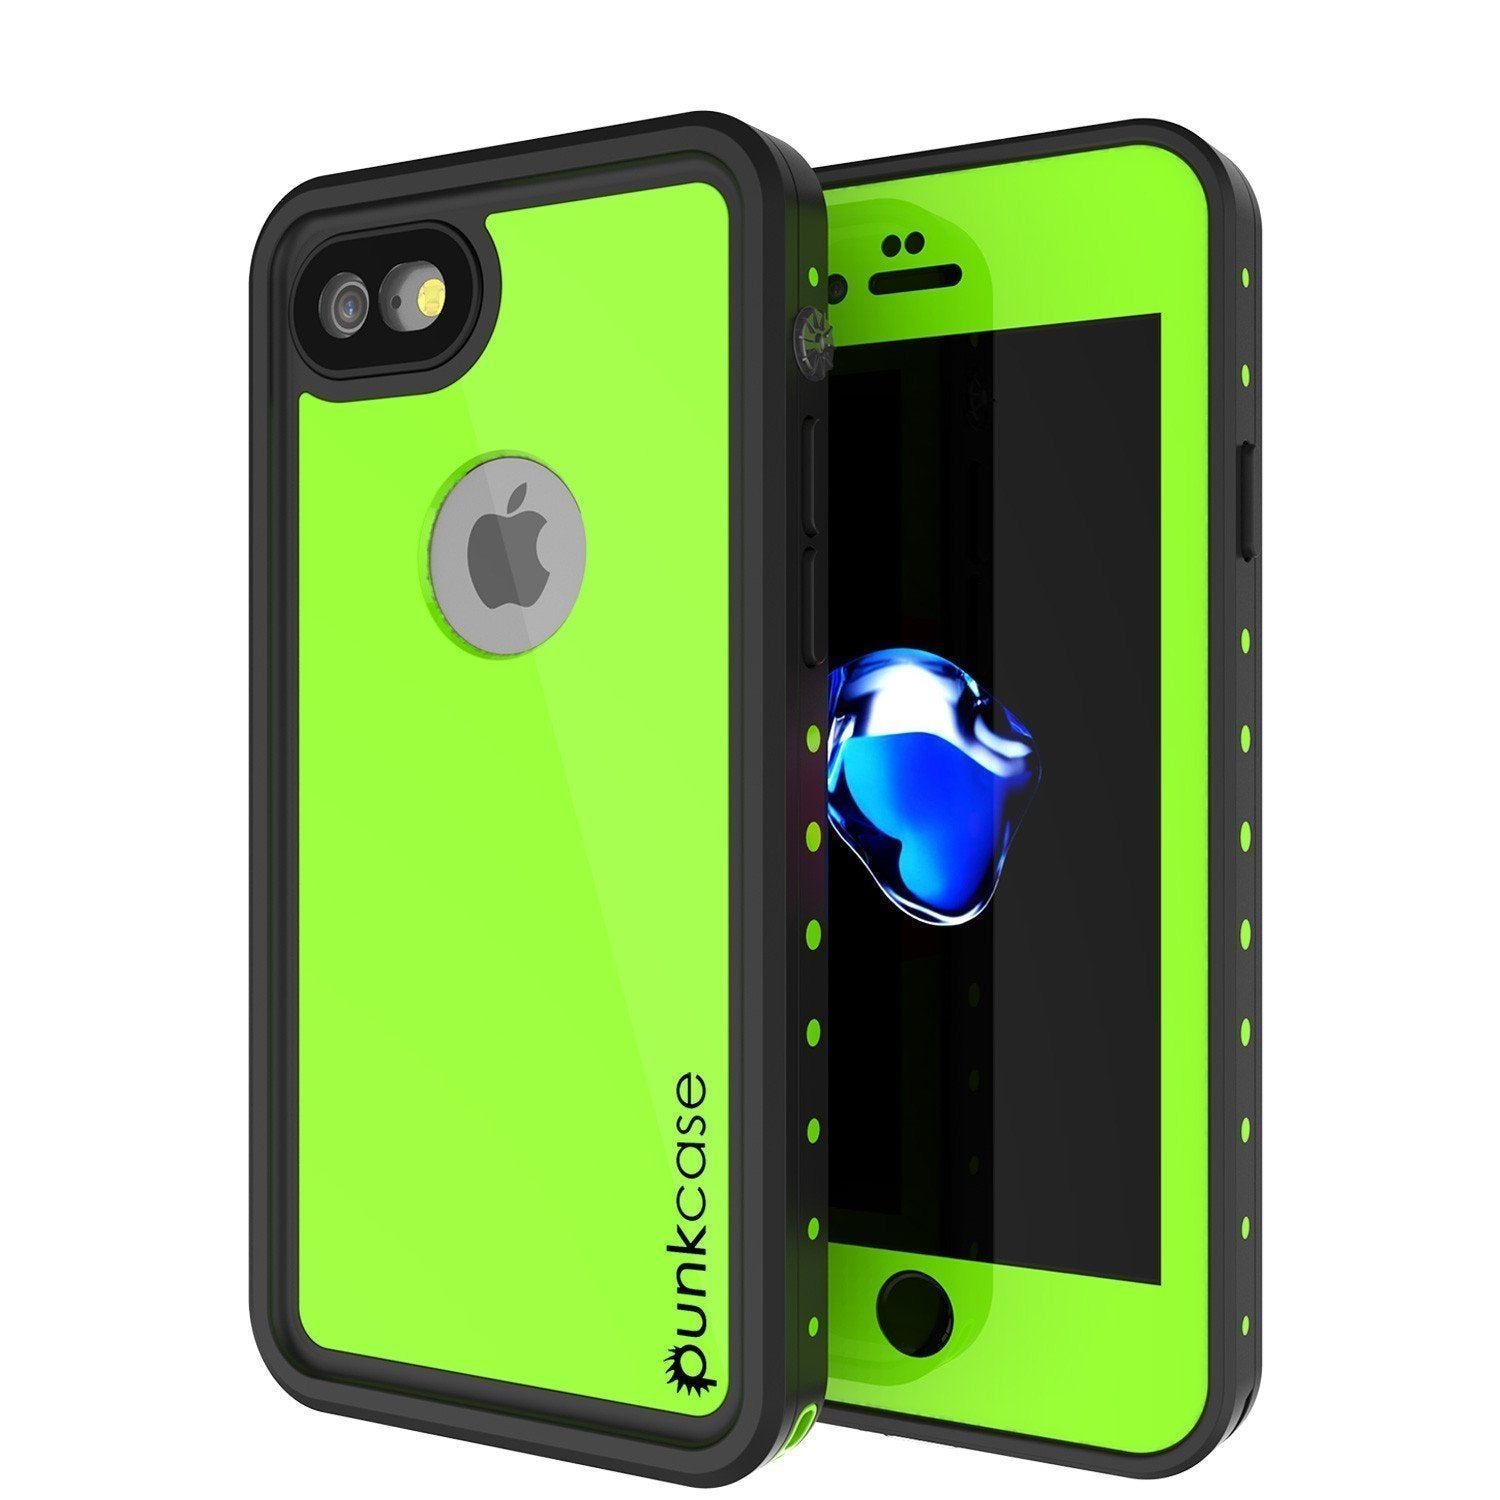 "iPhone SE (4.7"") Waterproof Case, Punkcase [Light Green] [StudStar Series] [Slim Fit][IP68 Certified]  [Dirt/Snow Proof]"